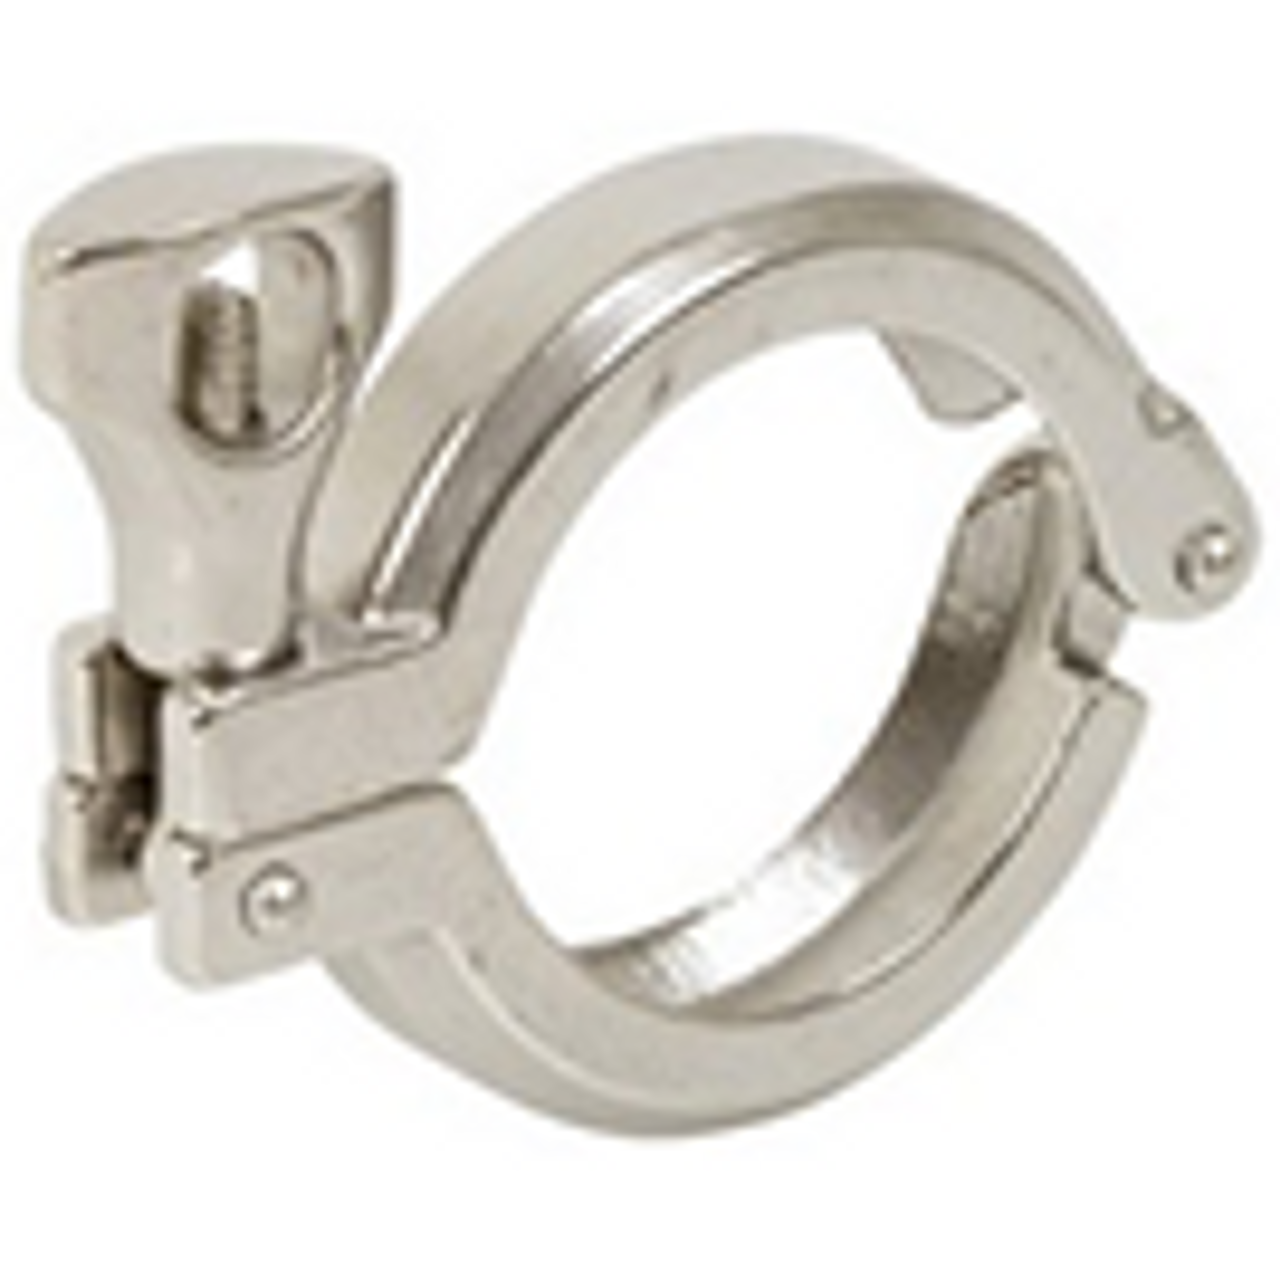 Clamp End